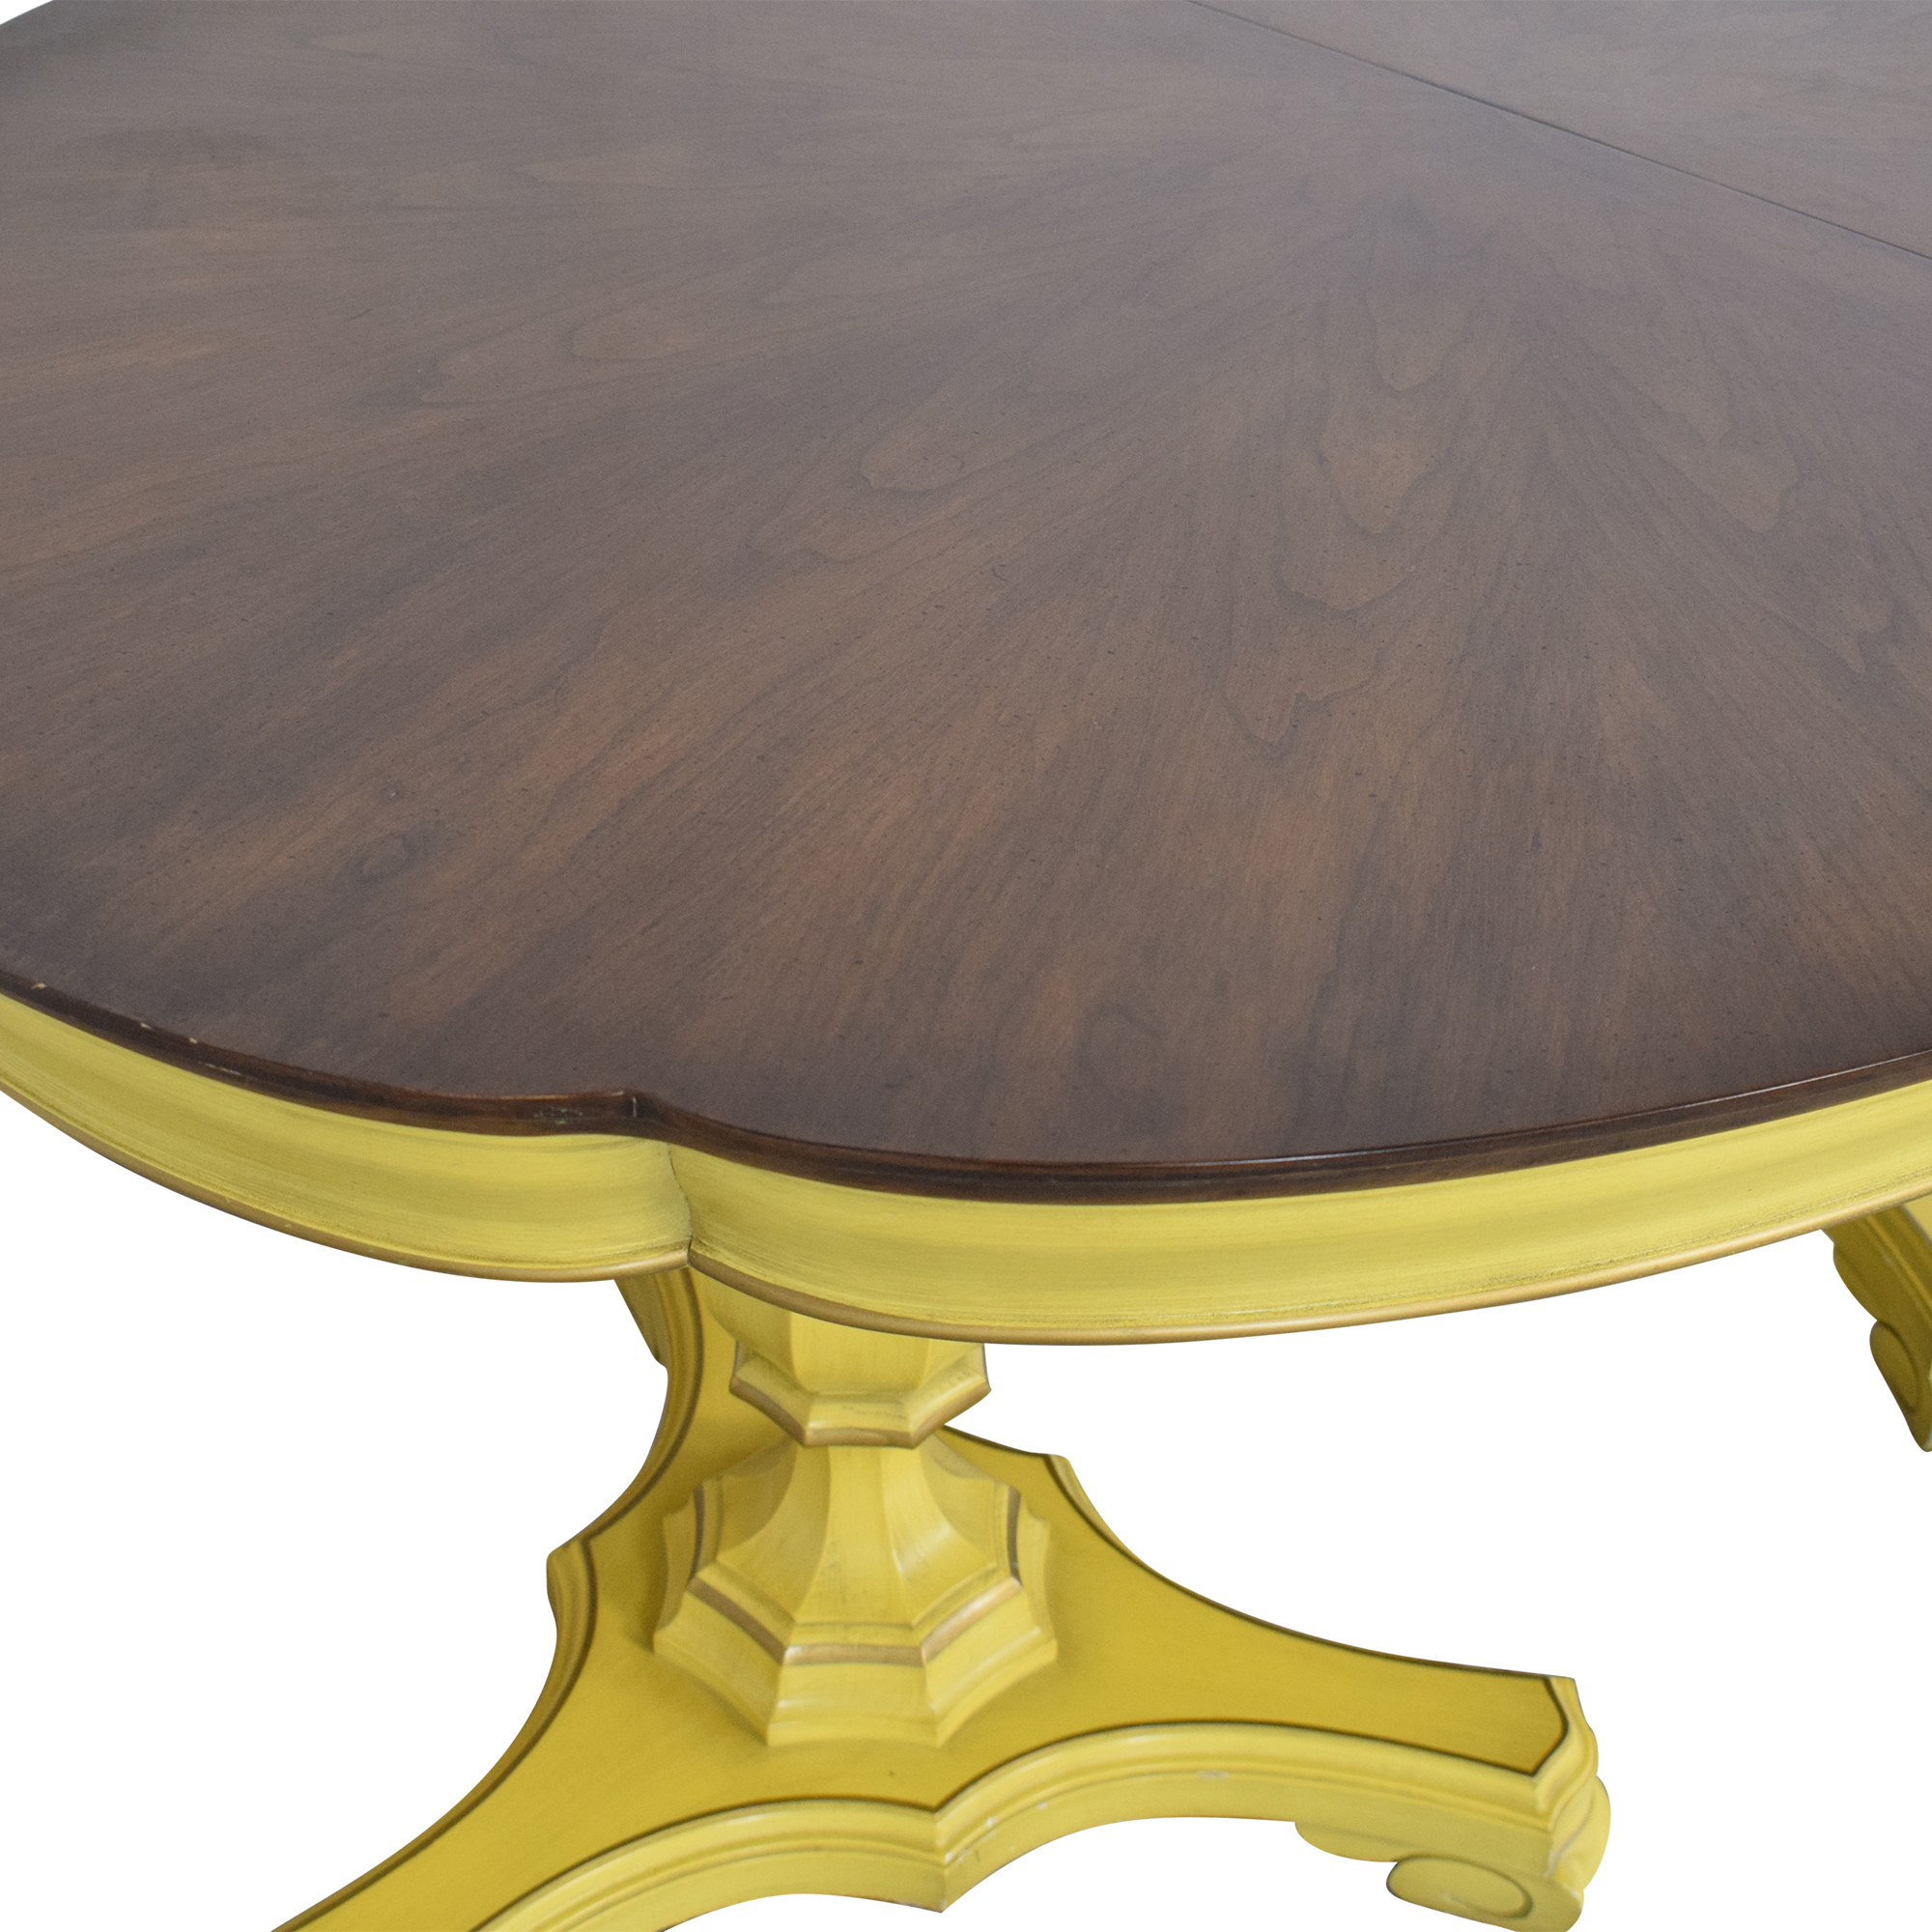 Union National Union National Double Pedestal Extending Dining Table Dinner Tables